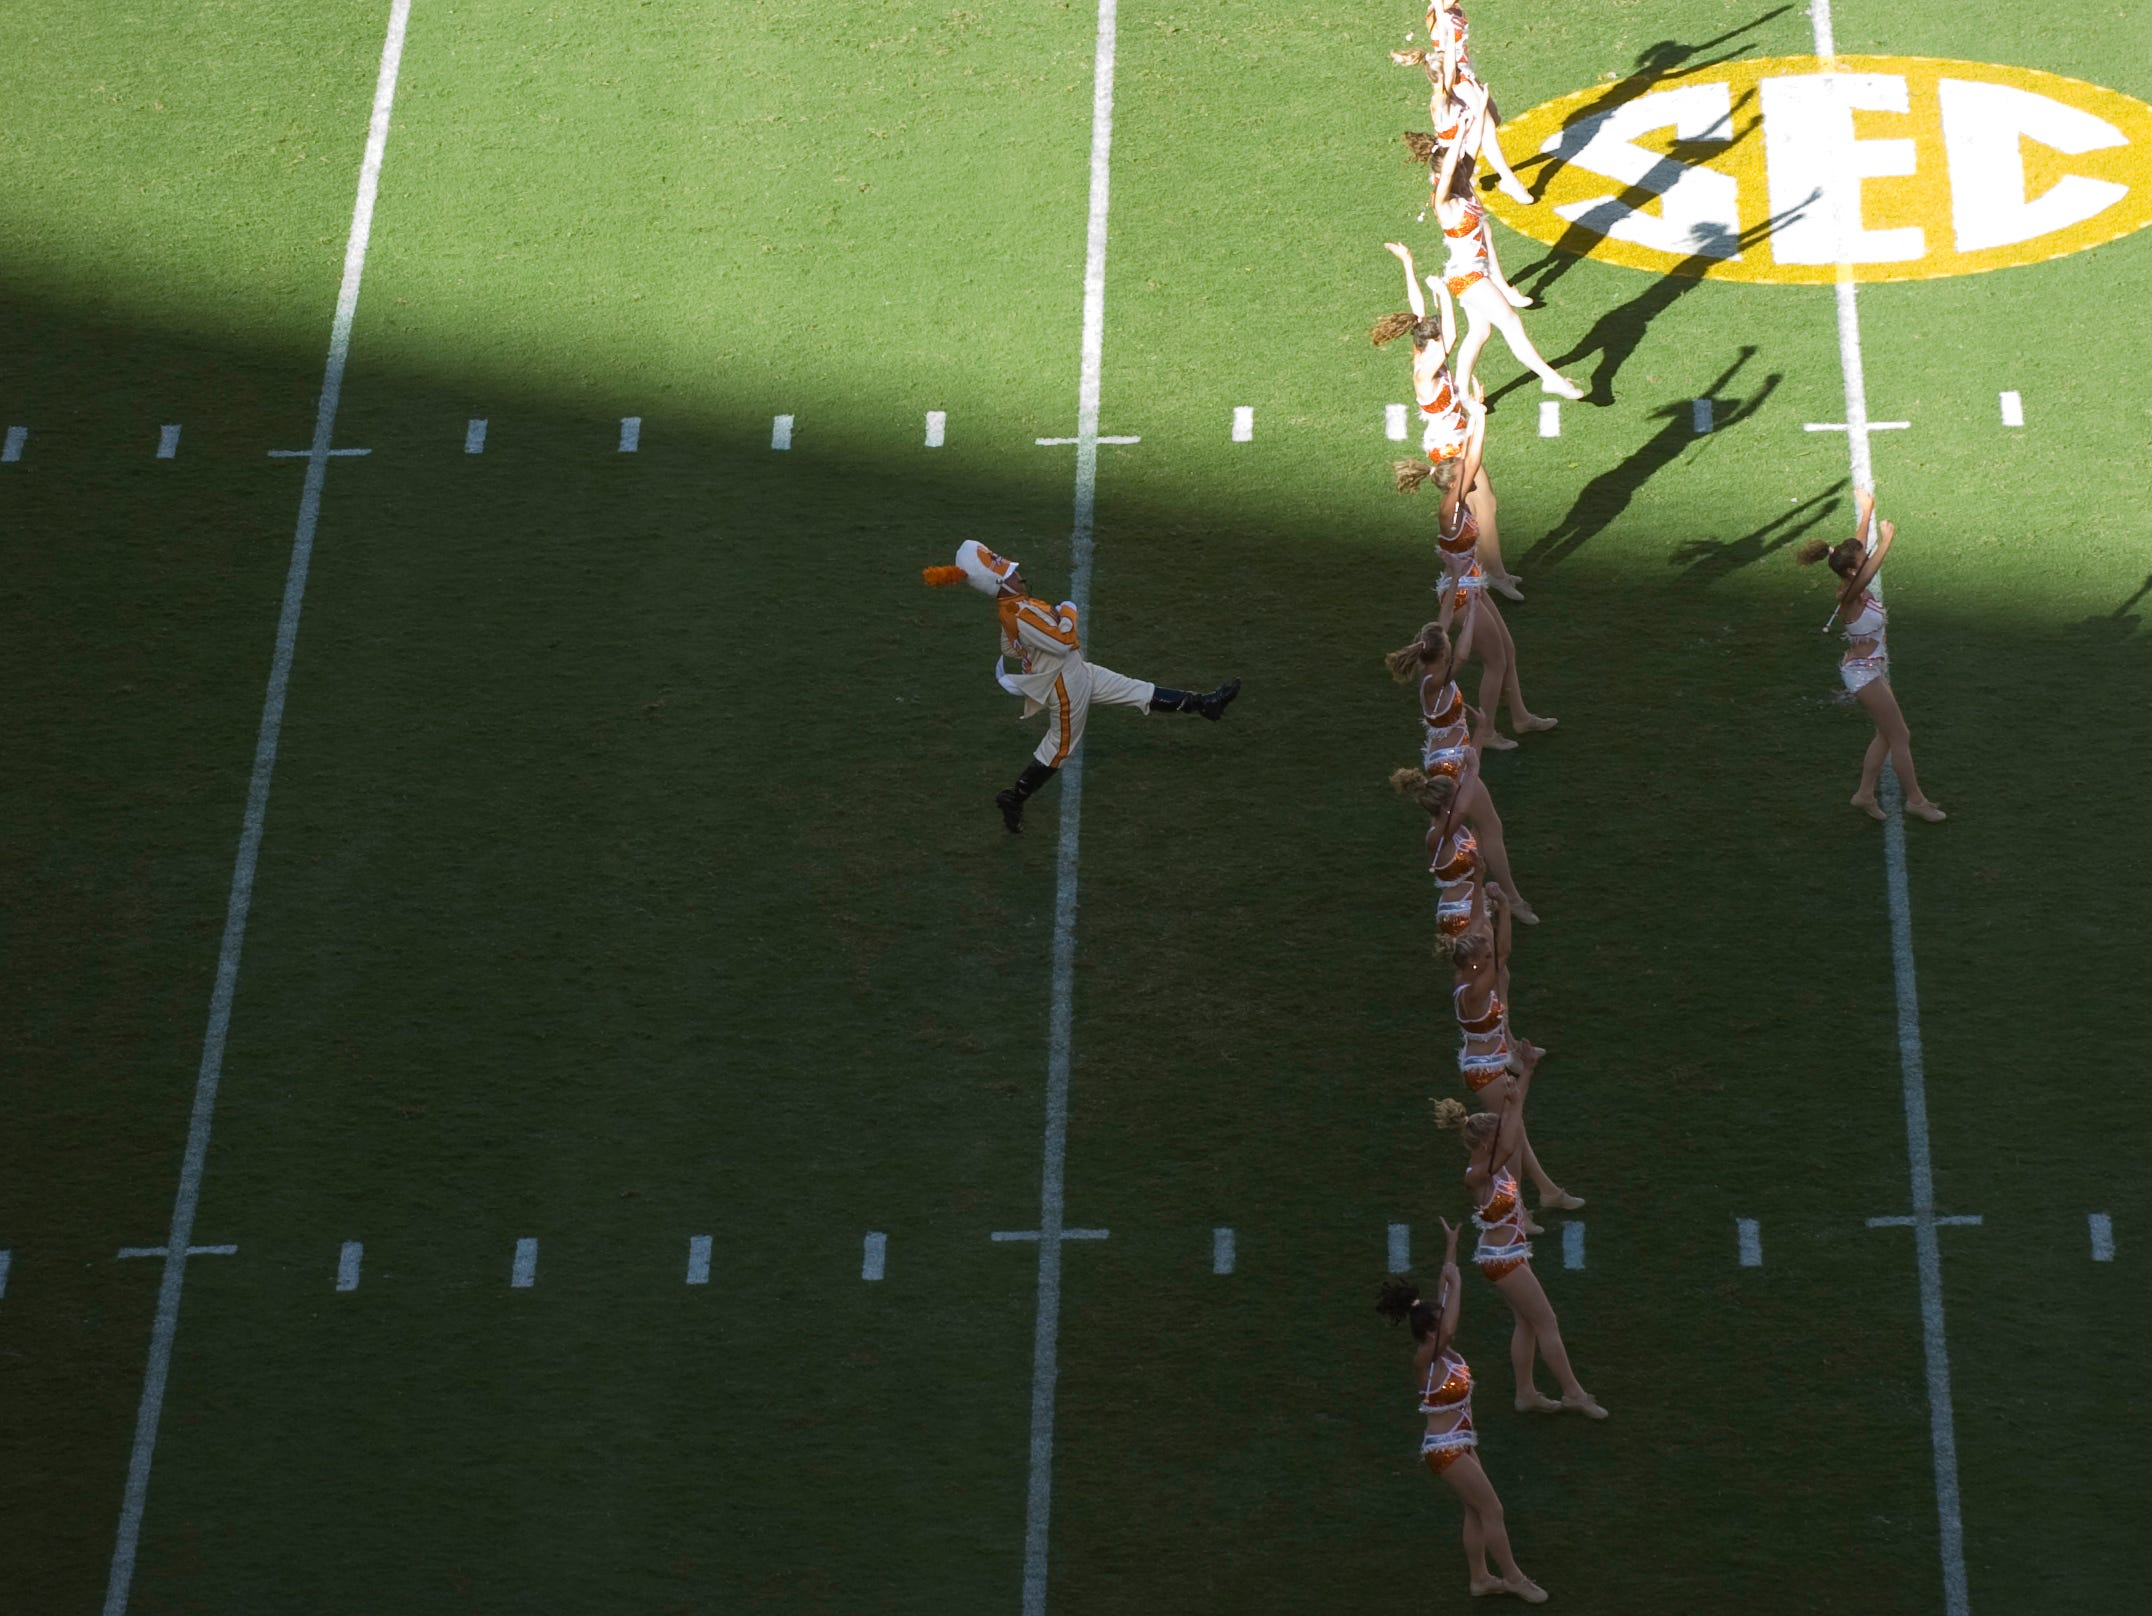 Tennessee majorette's and the drum major lead the band on to the field in the home opener against UT Martin at Neyland Stadium on Saturday, Sept. 4, 2010. UT won the game 50-0.